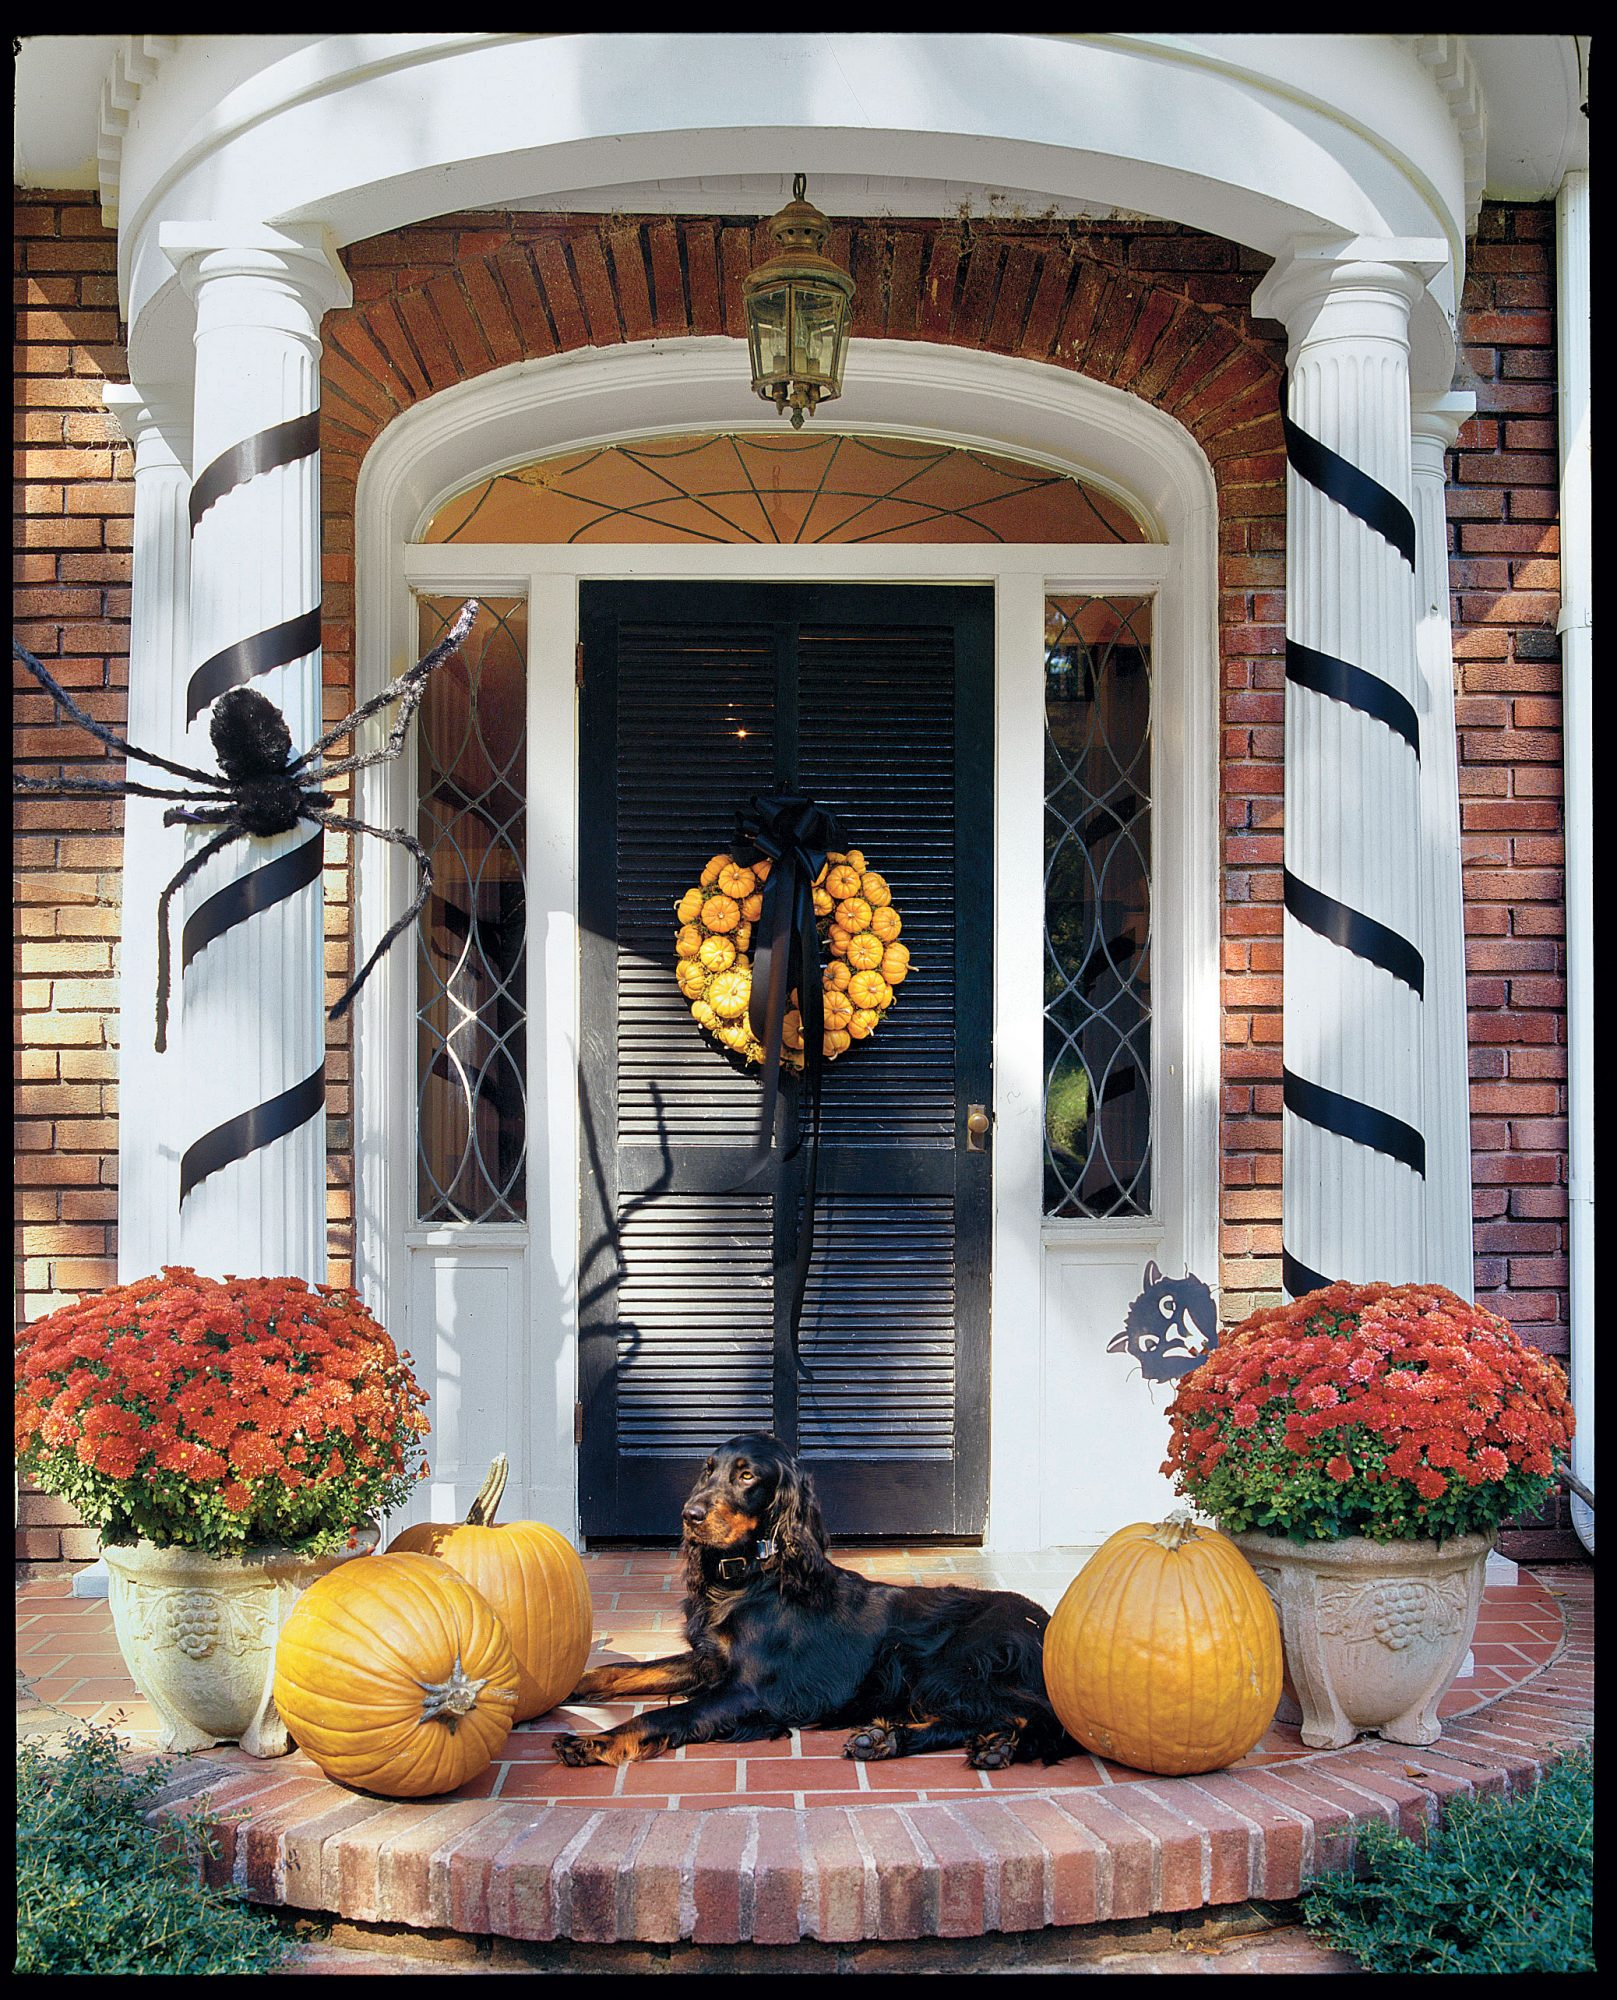 Decorating Step-by-Step: Wreath of Pumpkins